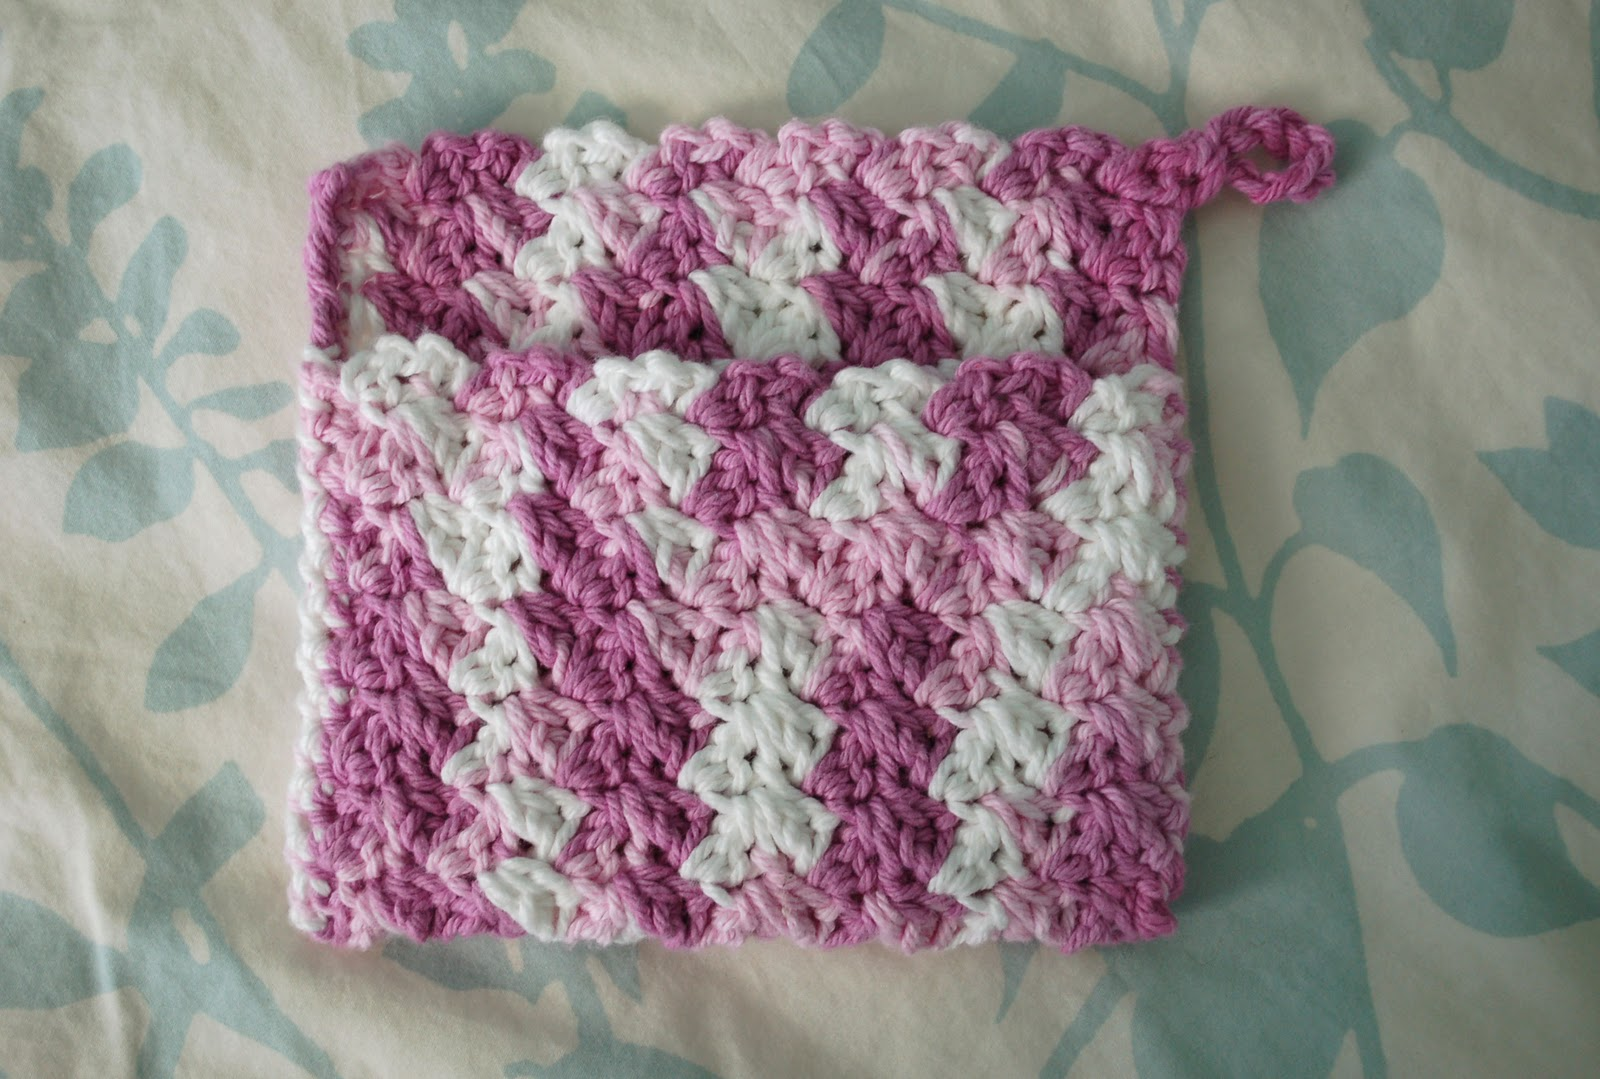 Easy Crochet Potholders Pattern Free Crochet Pattern For Easy | Apps ...